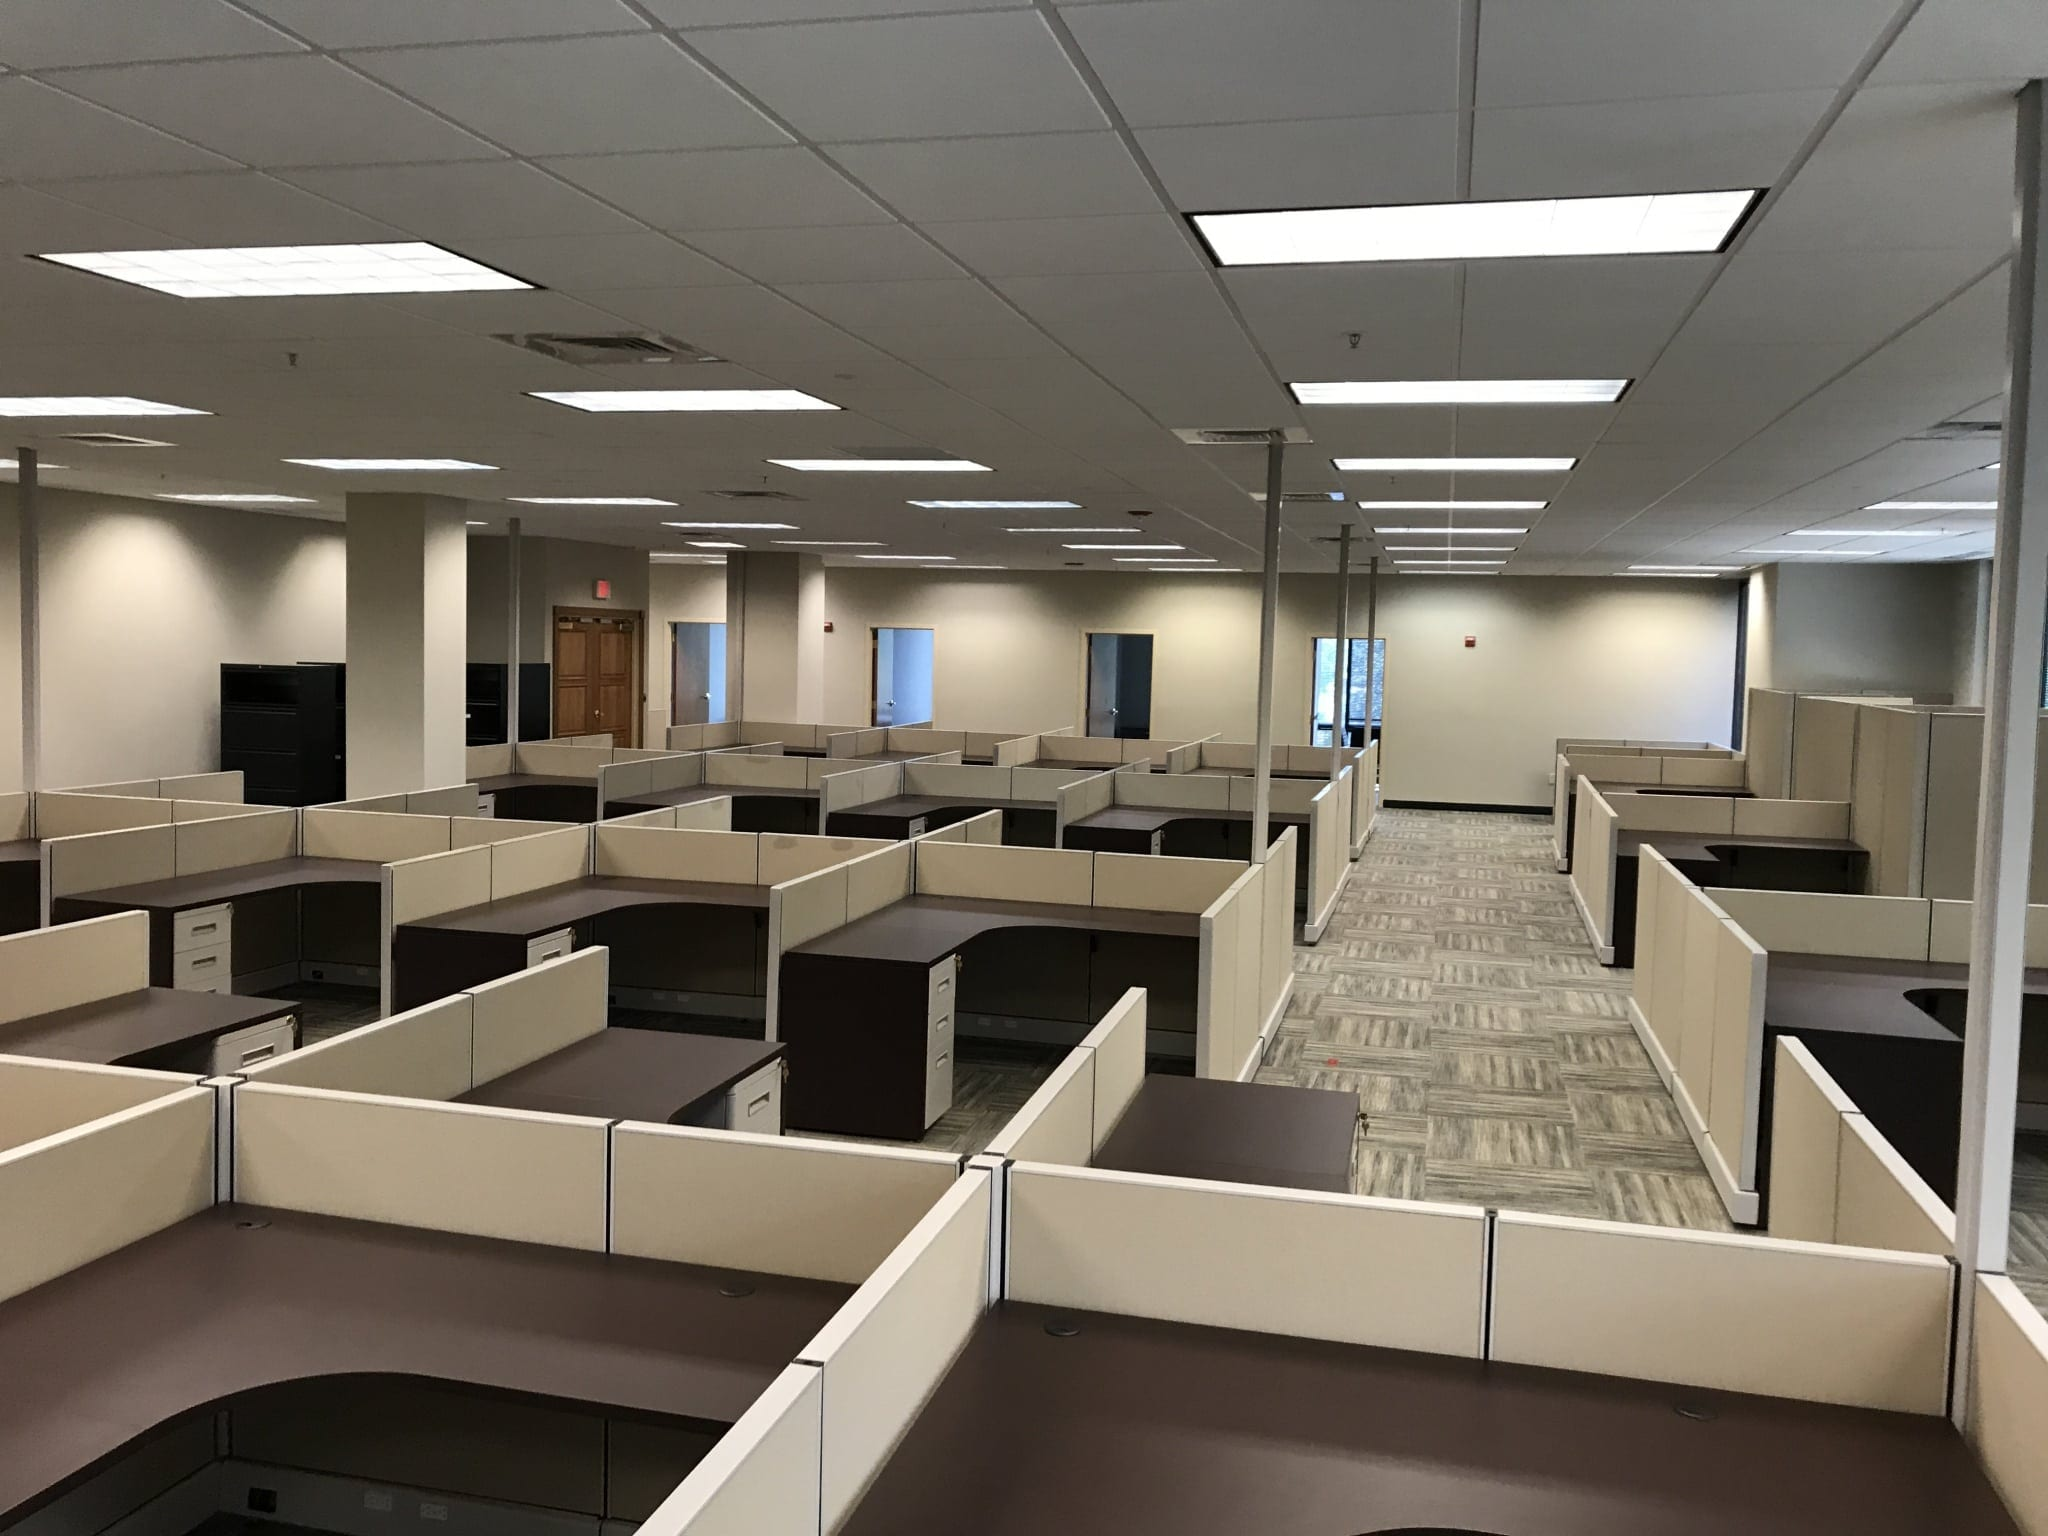 Tremendous Office Furniture Installation At Herc Rentals In Bonita Home Interior And Landscaping Ologienasavecom